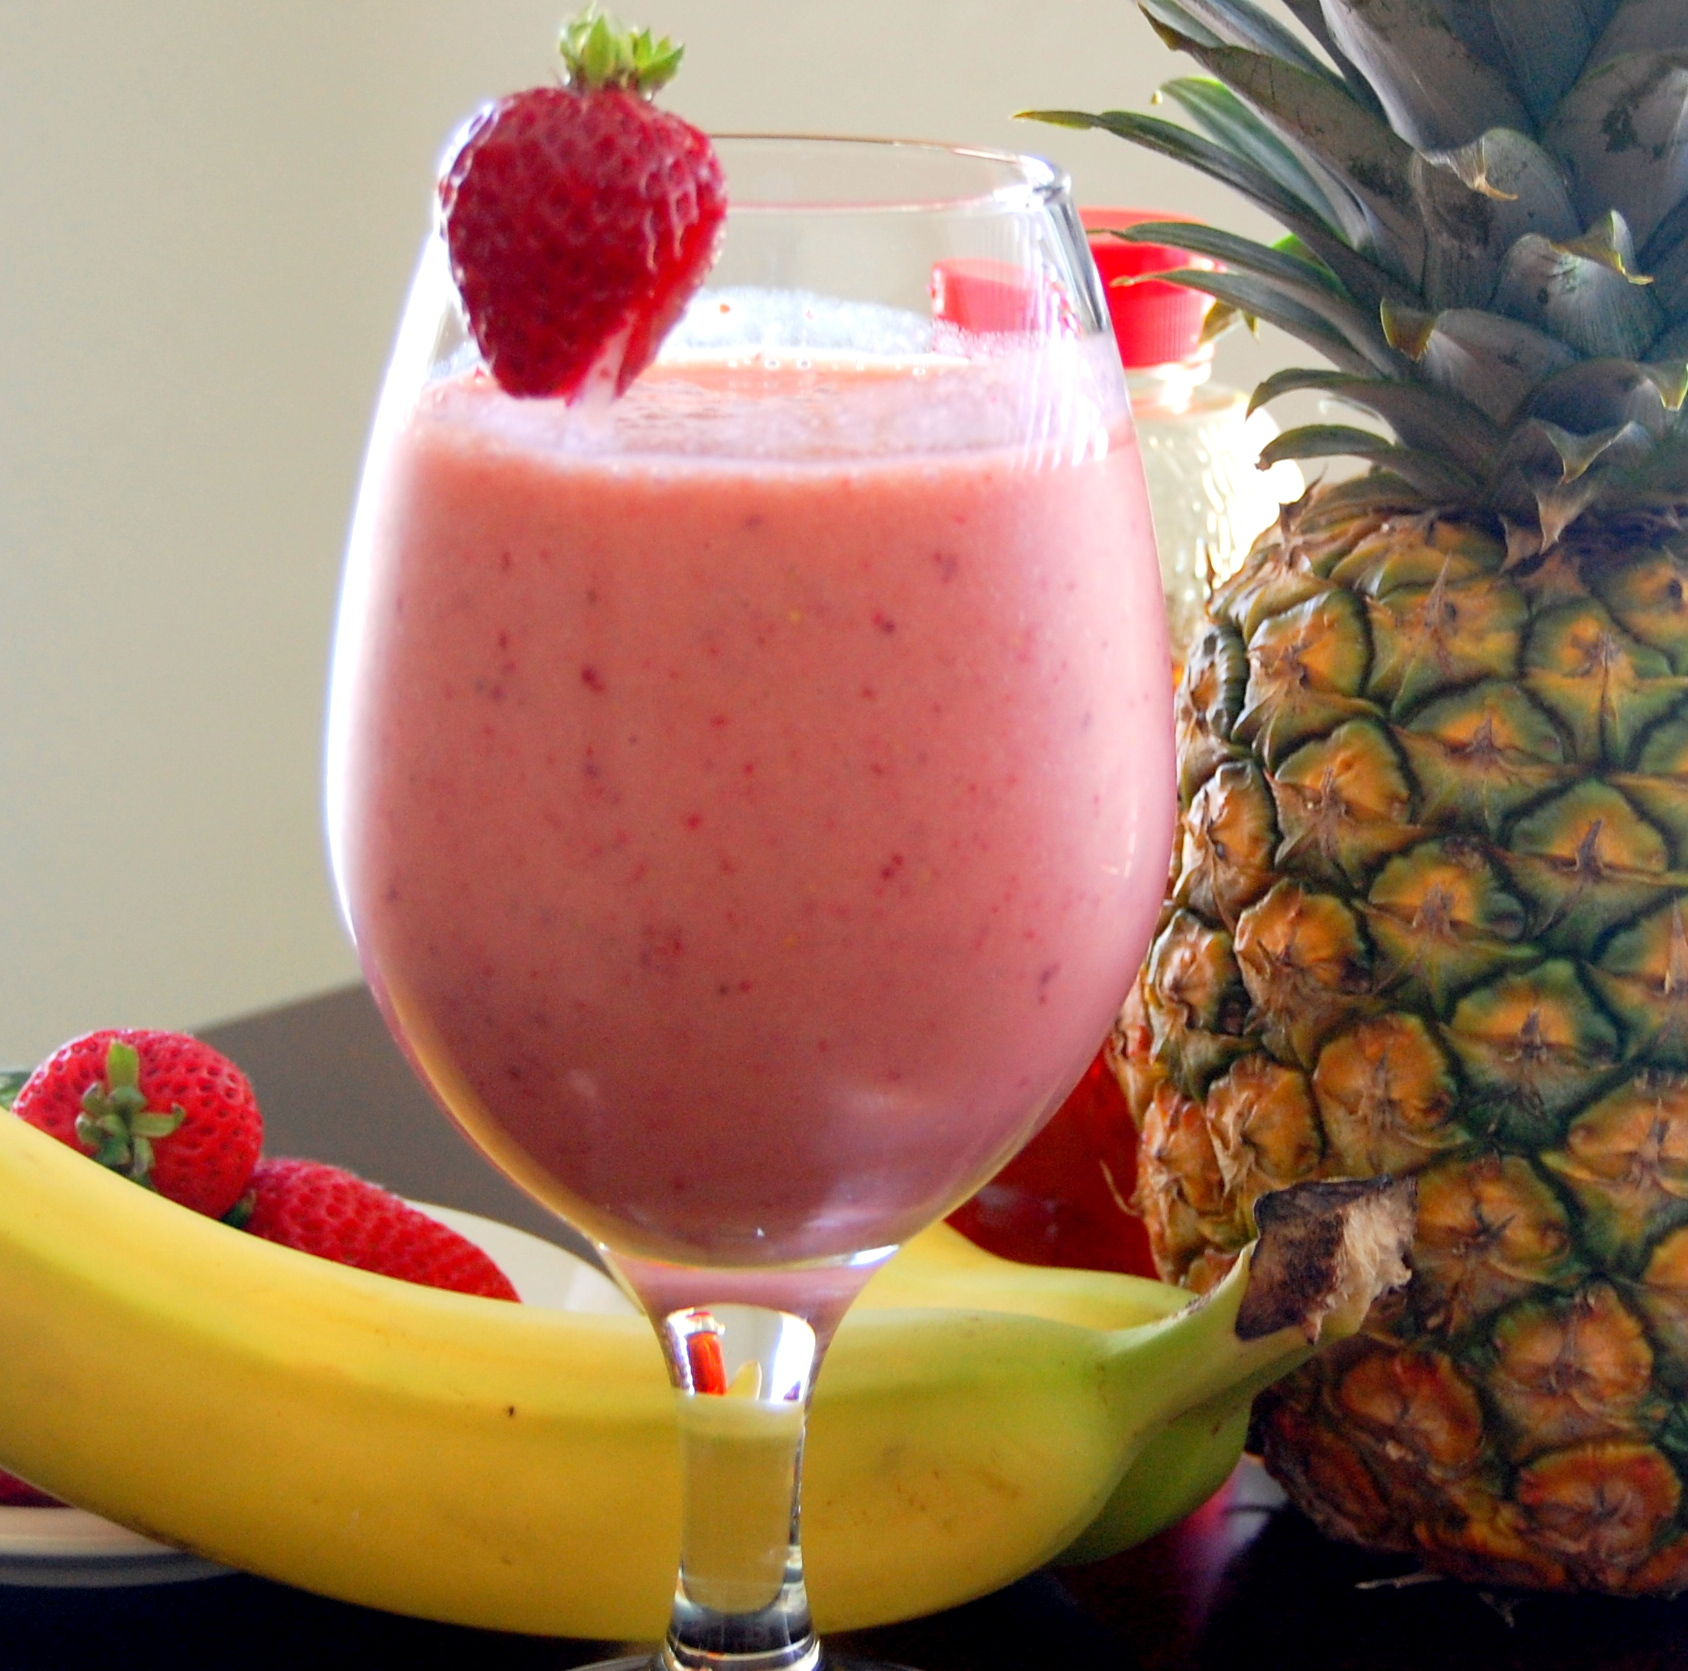 strawberry-banana-pineapple-smoothie.jpg